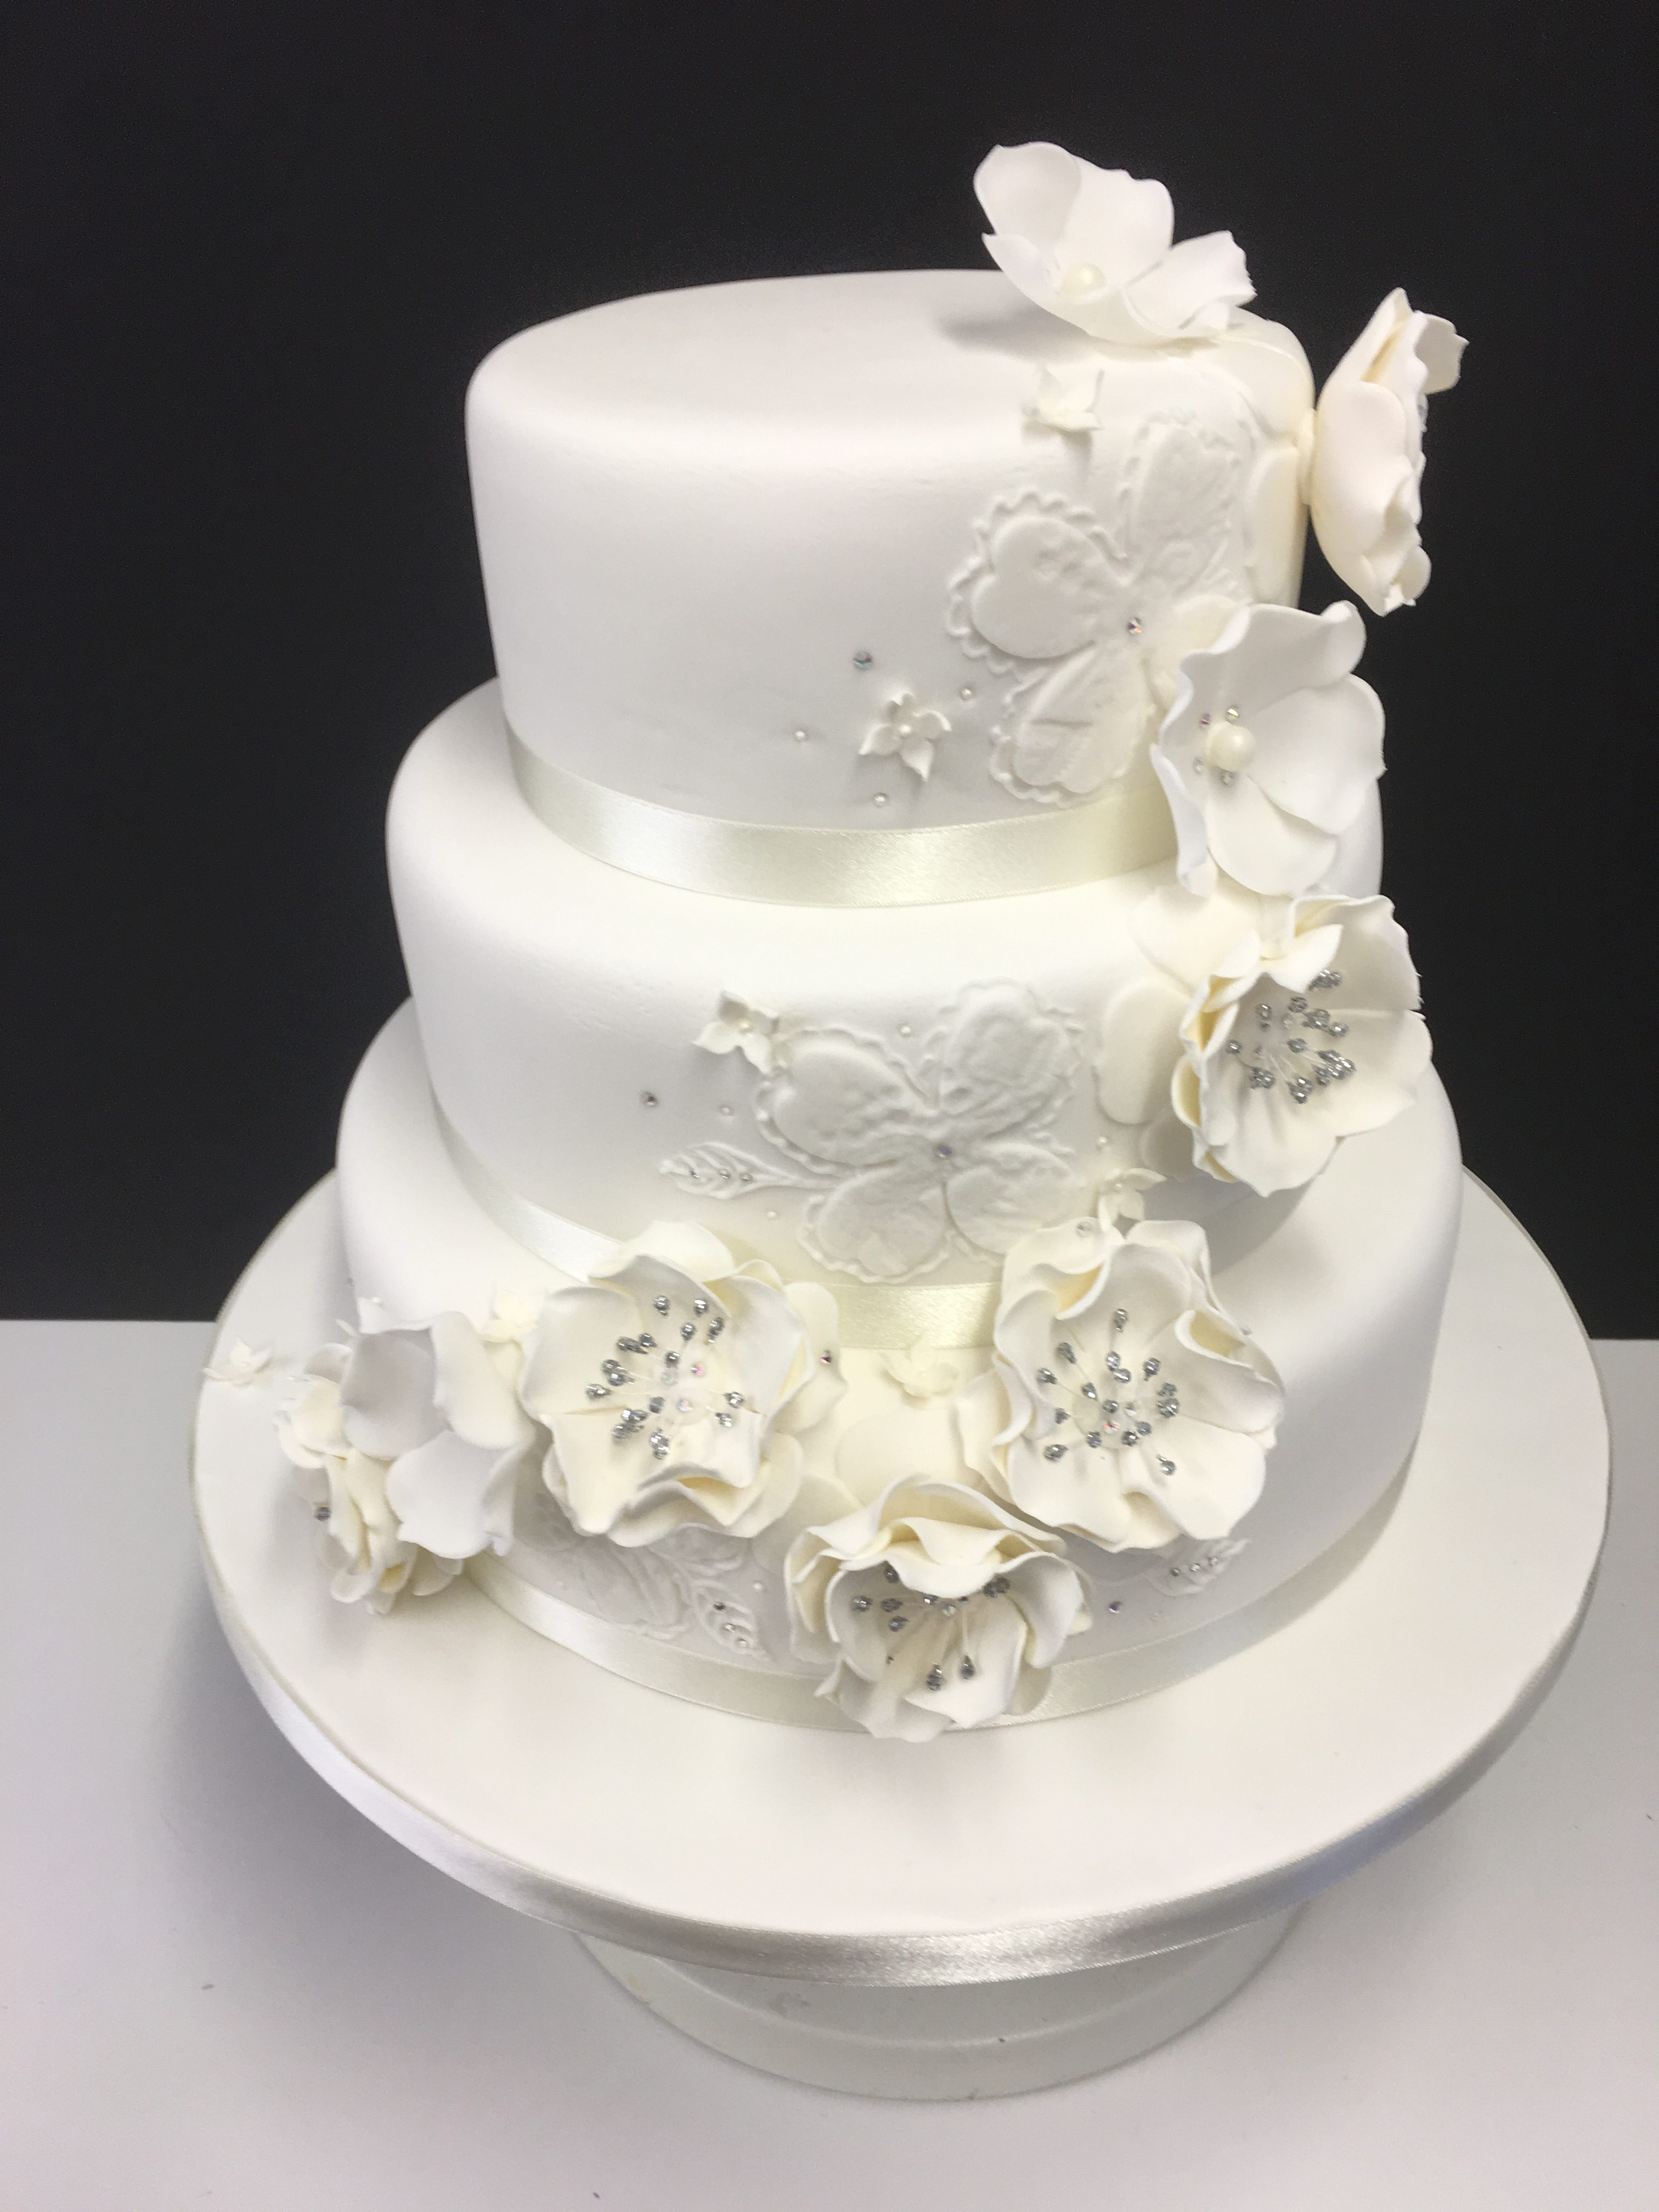 white iced wedding cake with white flowers and diamonte | Cakes for ...